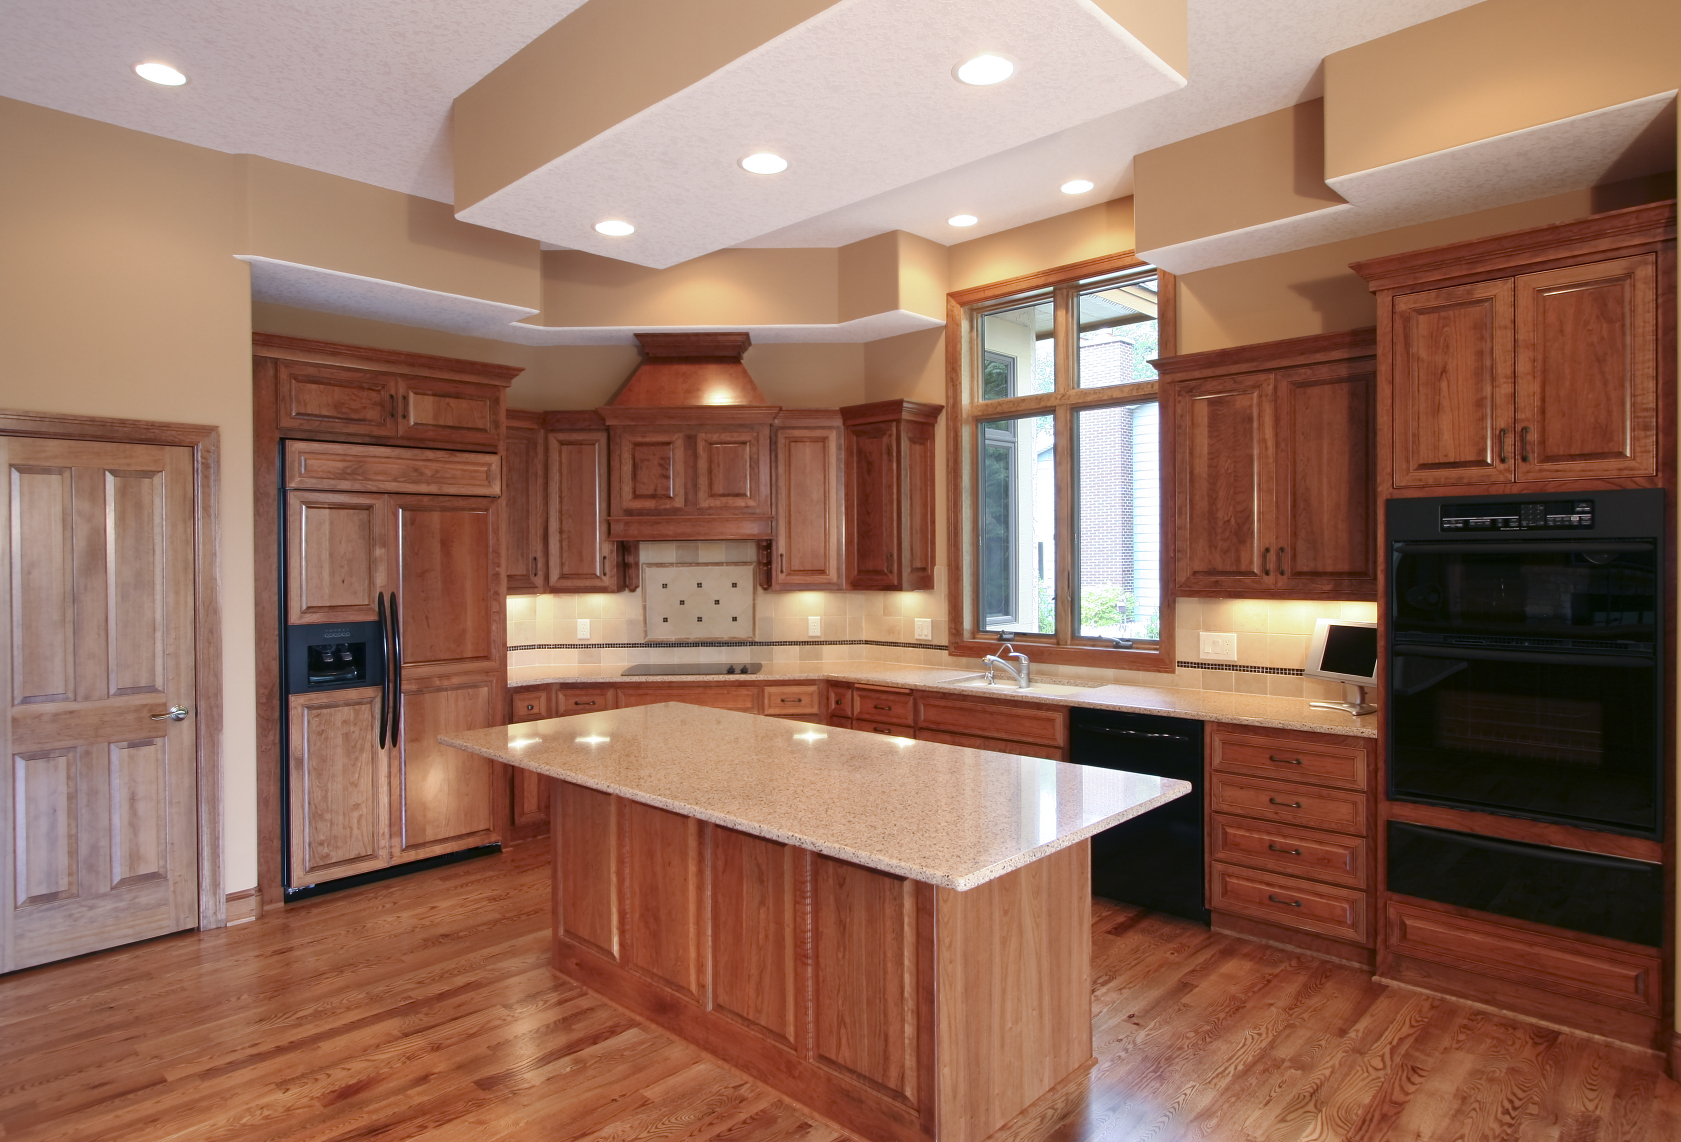 warm wood tone throughout this entire kitchen ix contrasted with beige